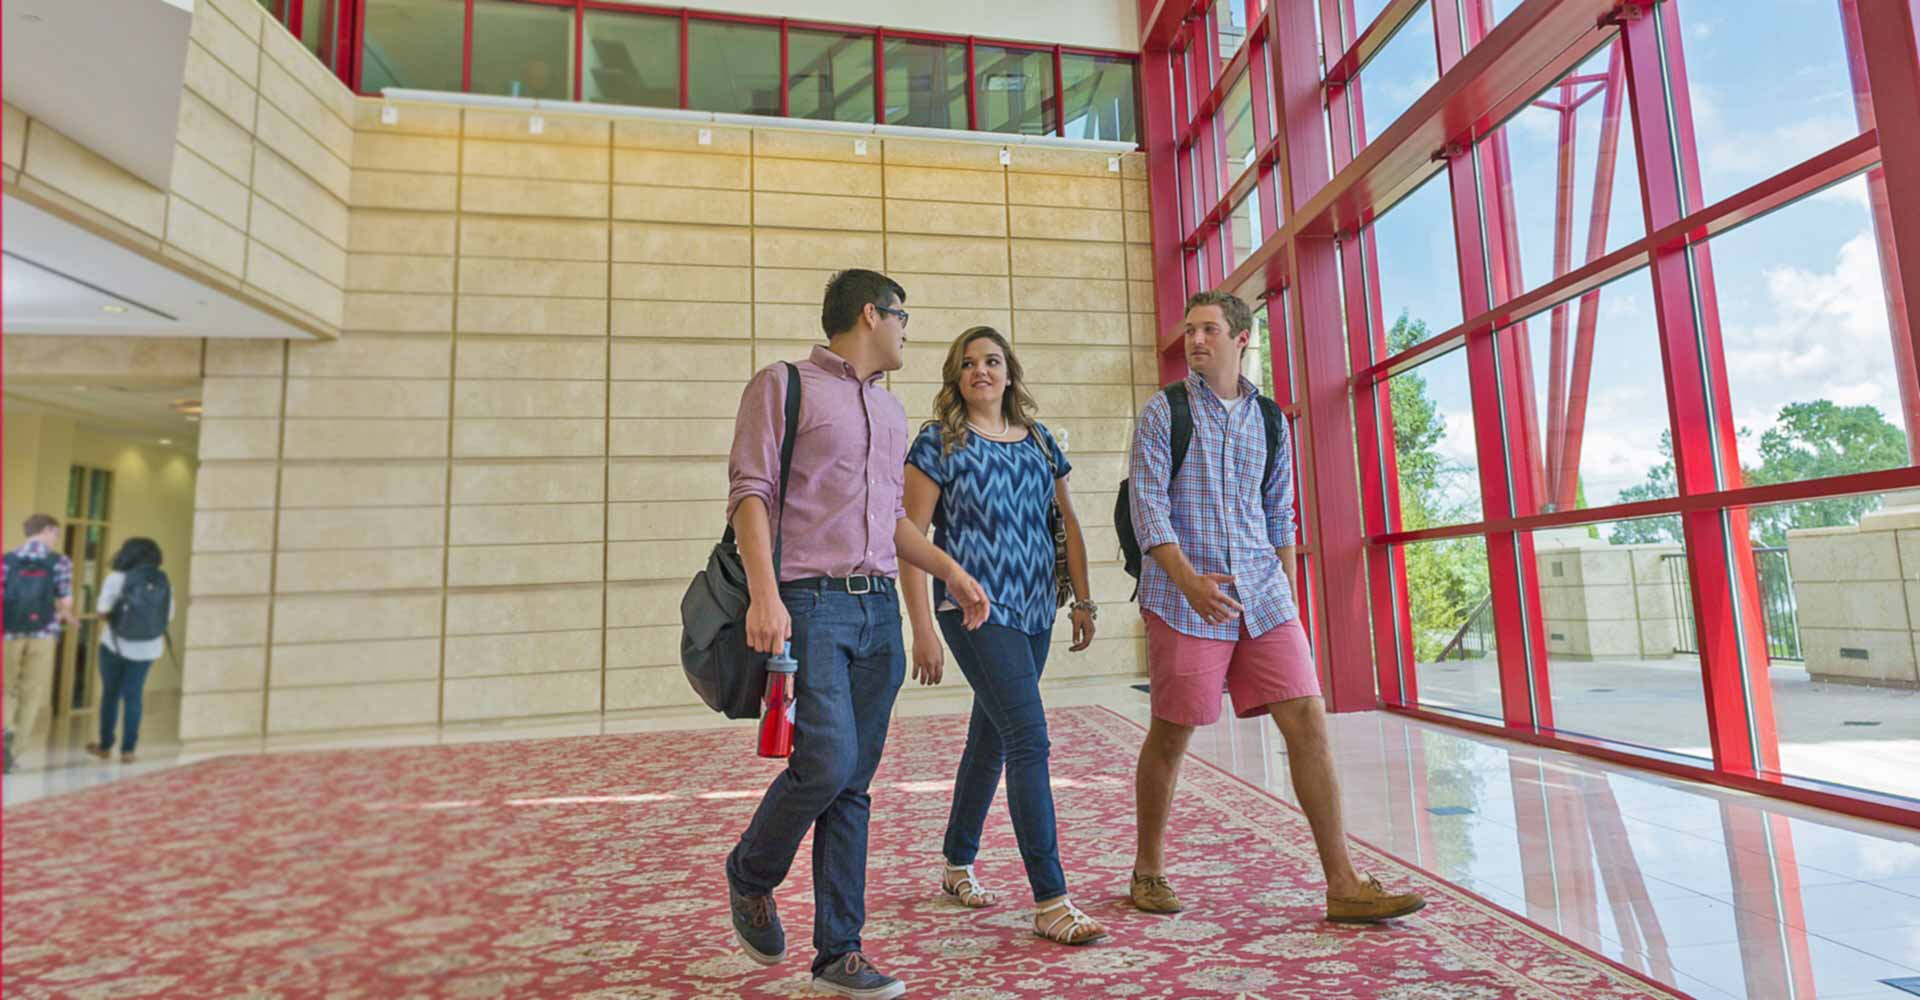 Students walking inside the Christoverson Humanities Building